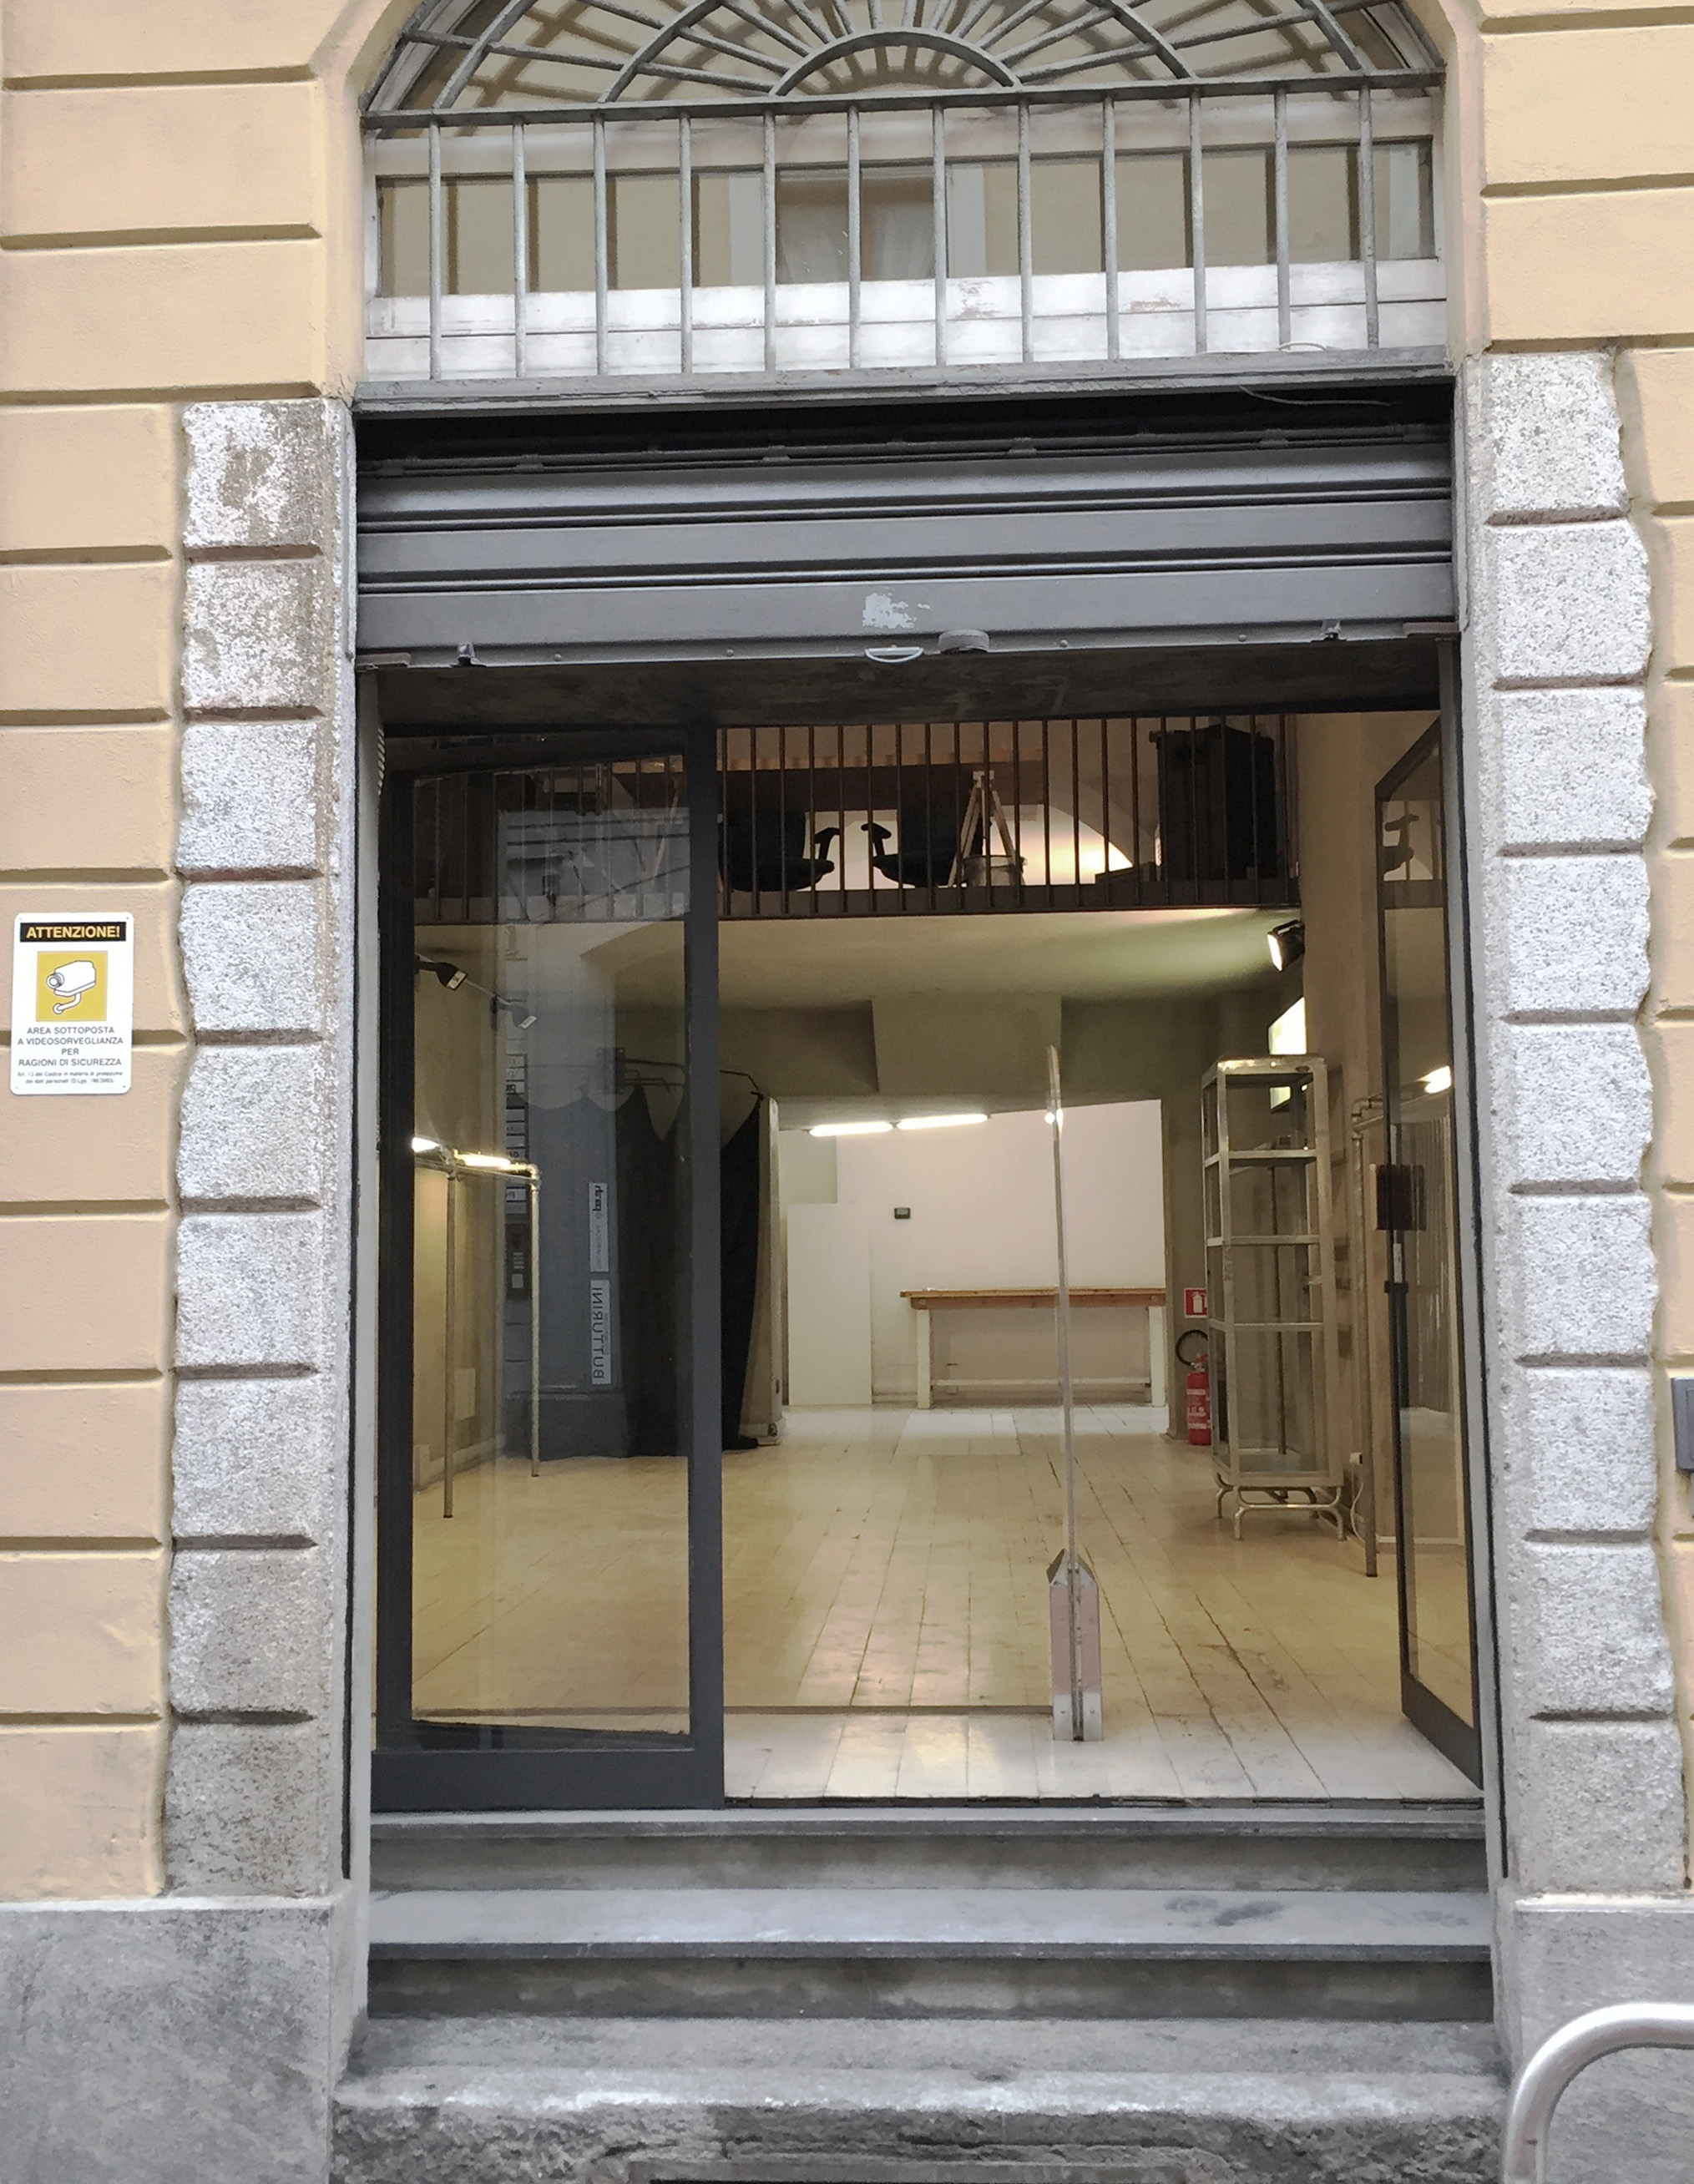 Tortona 5 - Loft, Negozio, Showroom di 50mq in Via Tortona 5 | location disallestita 1